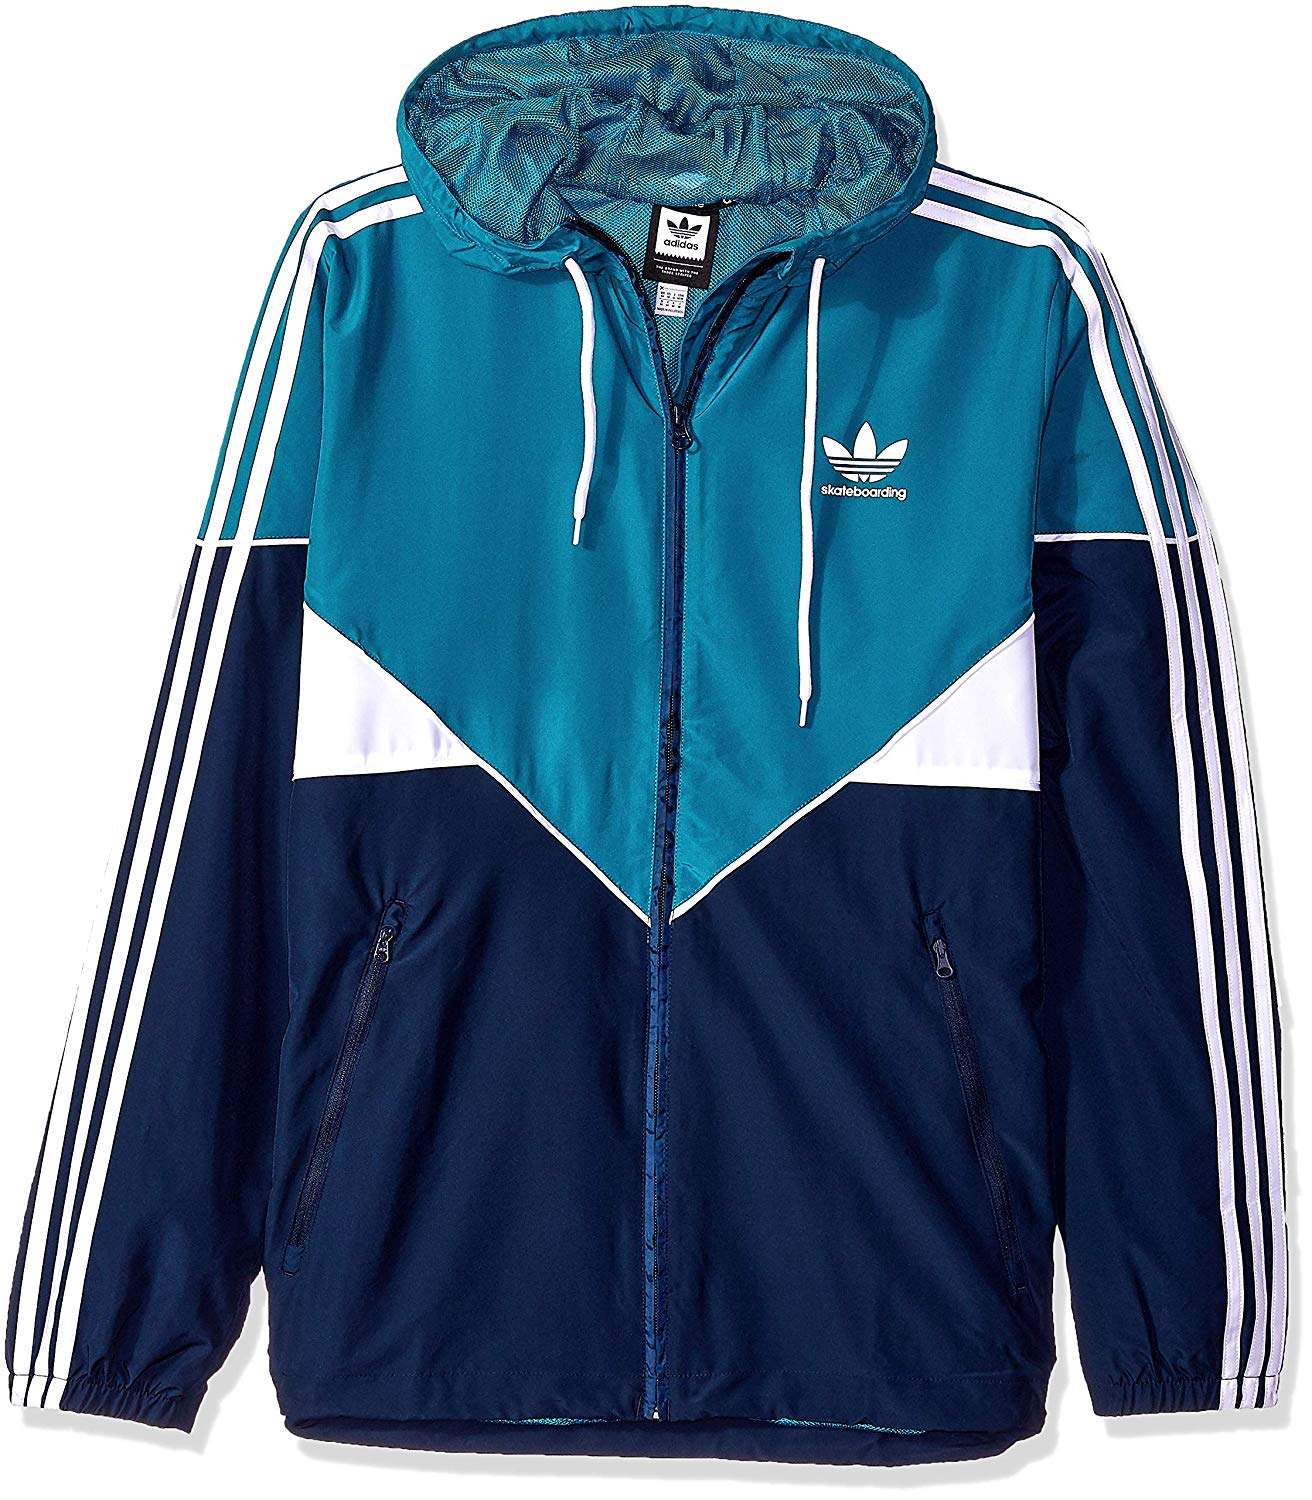 Details about Adidas Originals Premier Windbreaker Colorado Skatebording Jacket Windbreaker